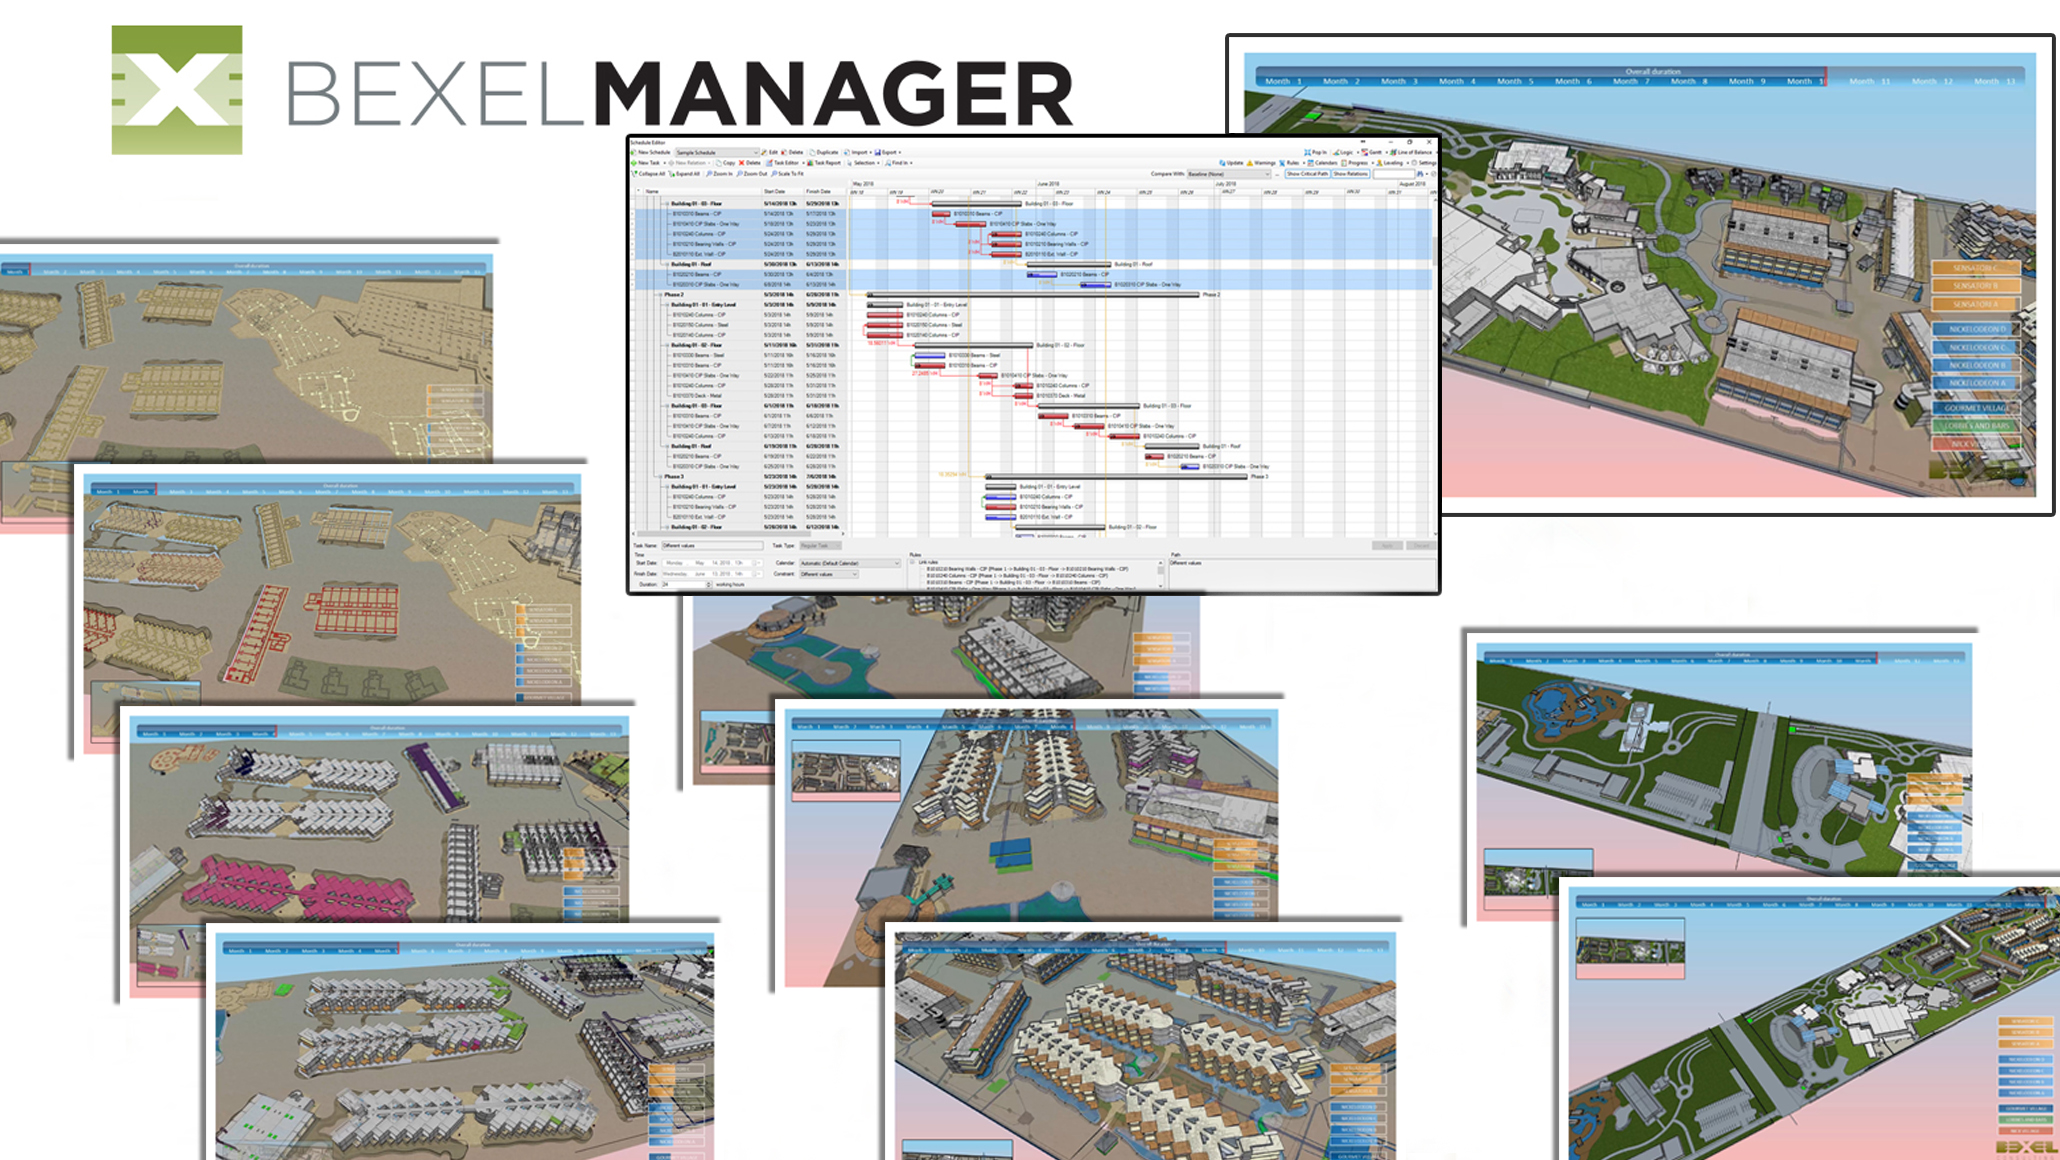 4D BIM - Progress tracking in Bexel Manager Software.